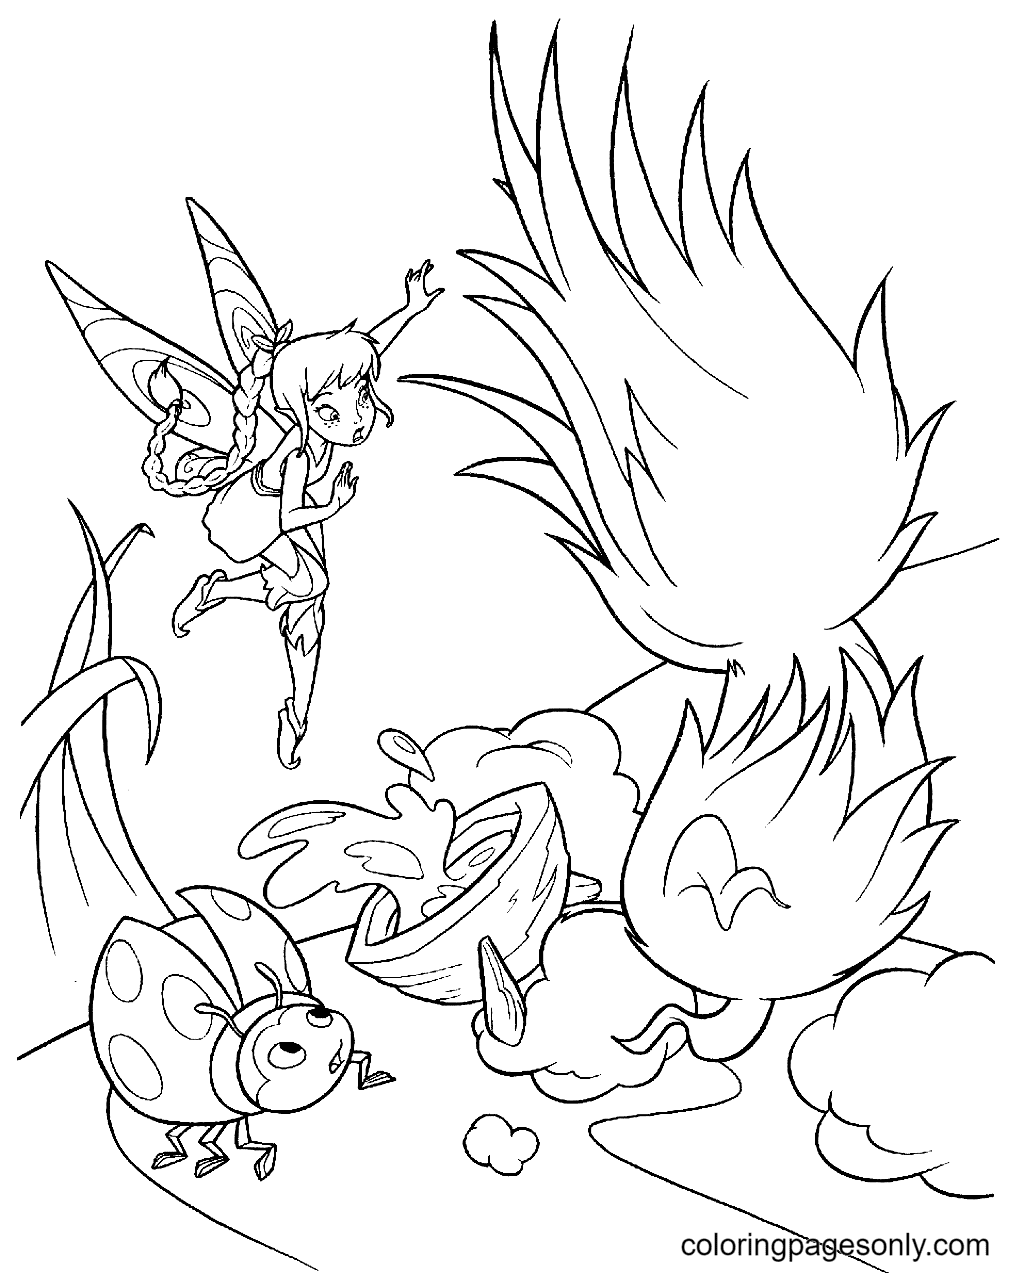 Tinkerbell Printable Coloring Page